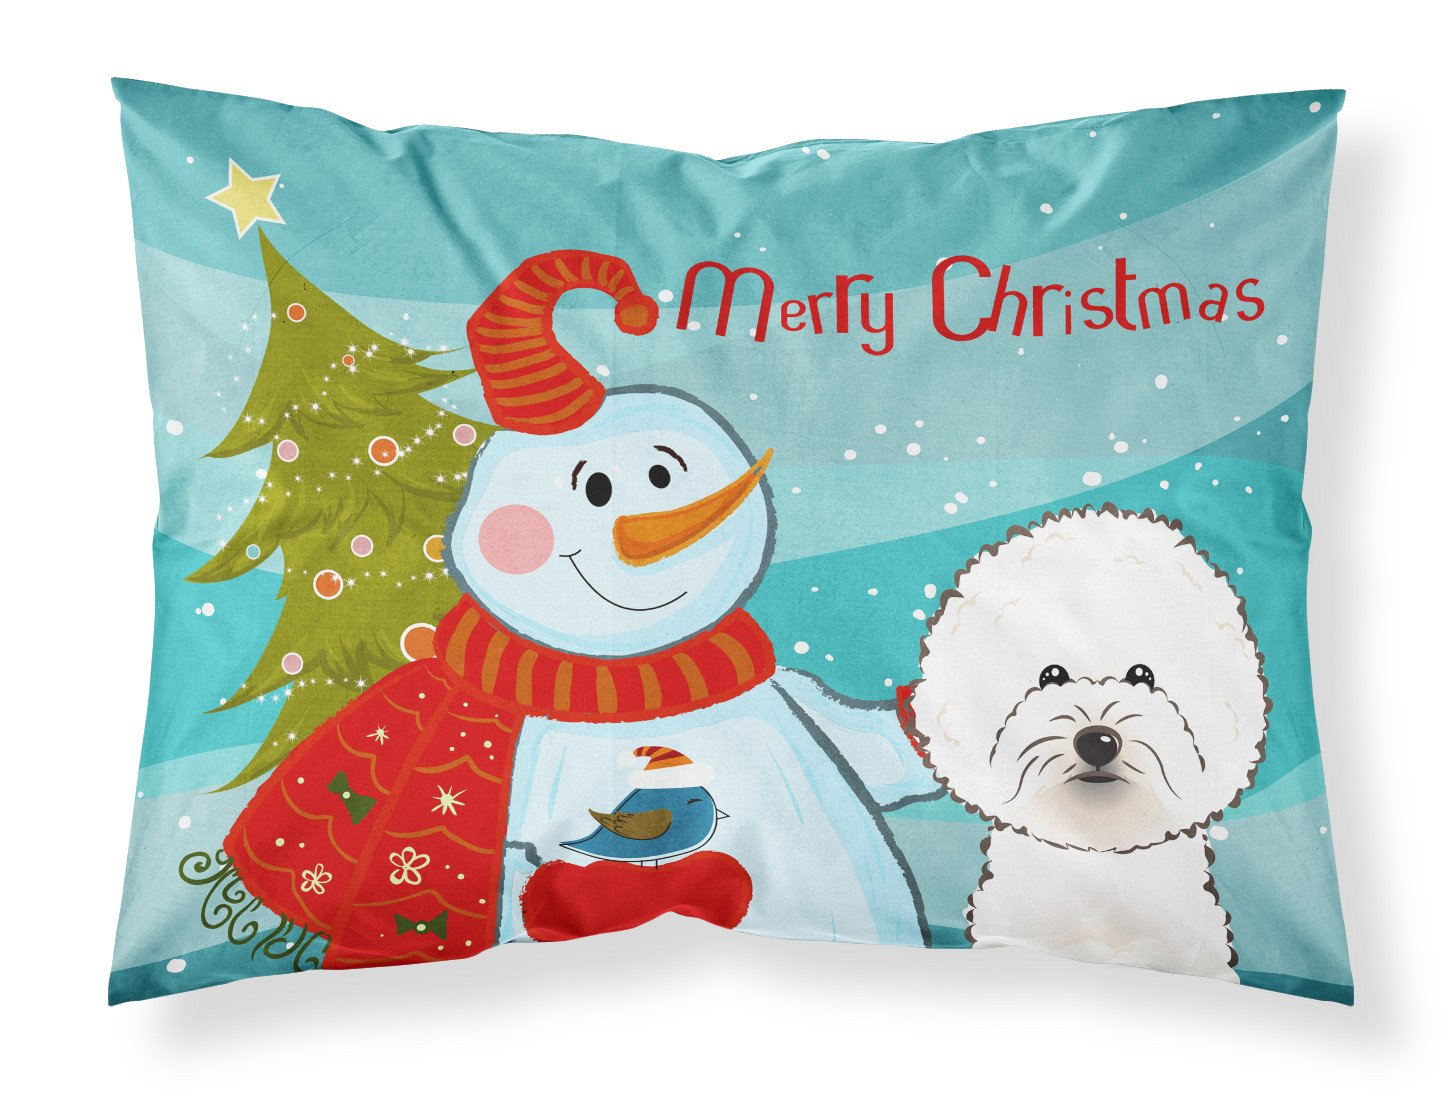 Snowman with Bichon Frise Fabric Standard Pillowcase BB1837PILLOWCASE by Caroline's Treasures